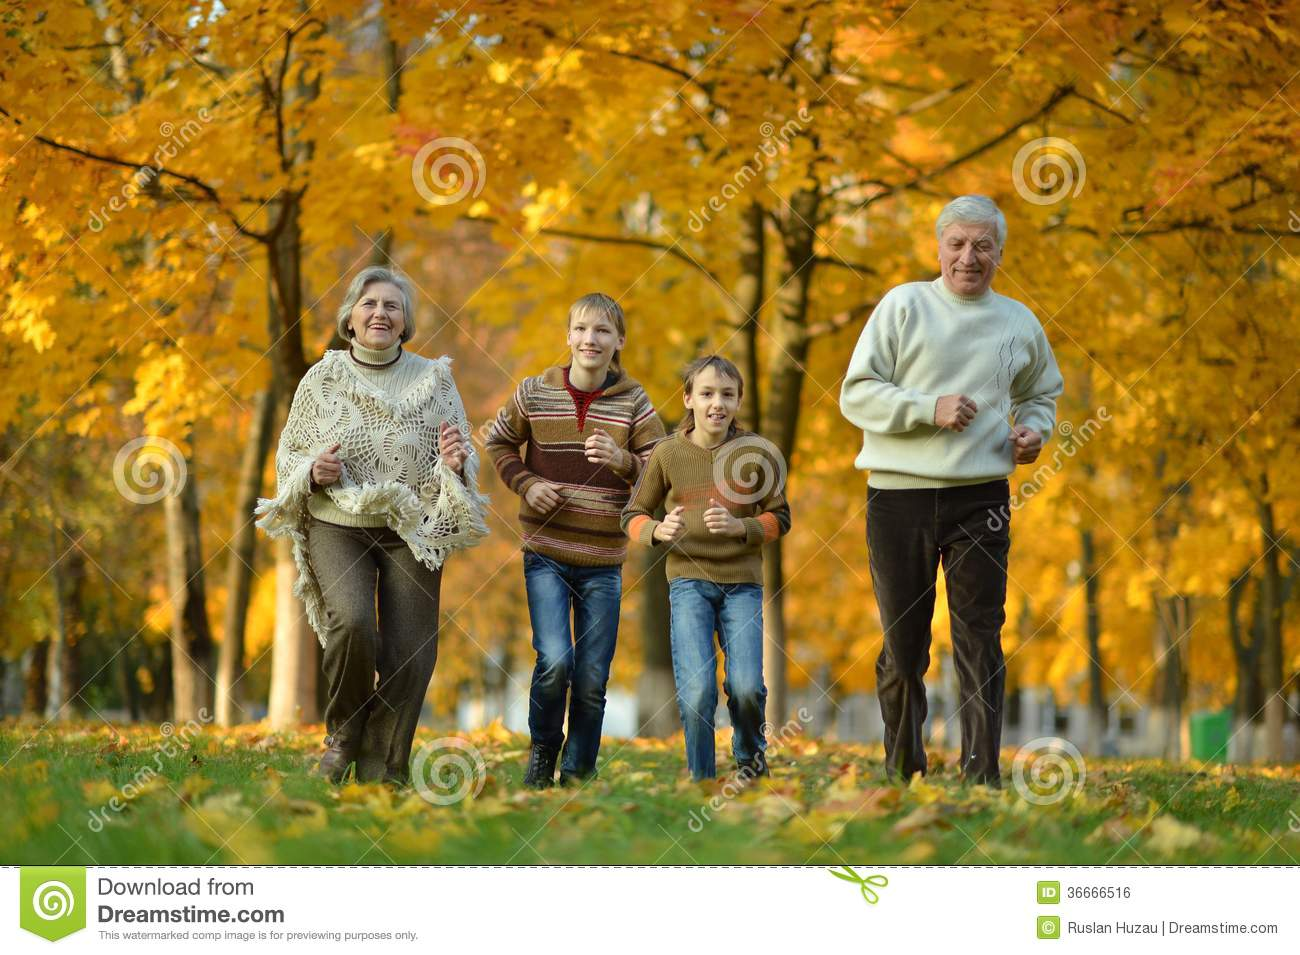 older man and woman with grandchildren stock photo - image of